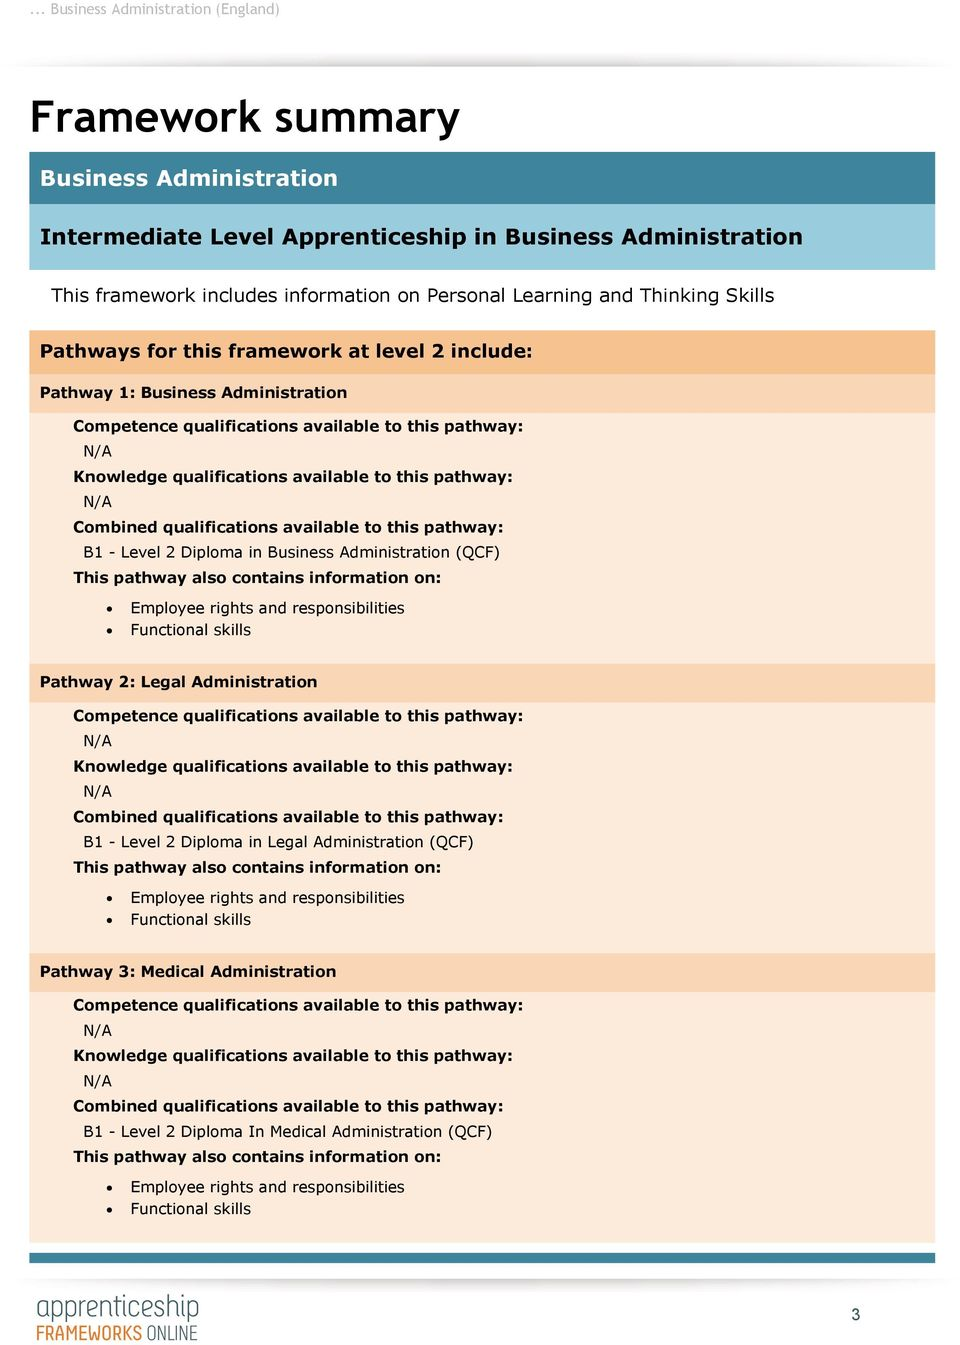 qualifications available to this pathway: B1 - Level 2 Diploma in Business Administration (QCF) This pathway also contains information on: Employee rights and responsibilities Functional skills